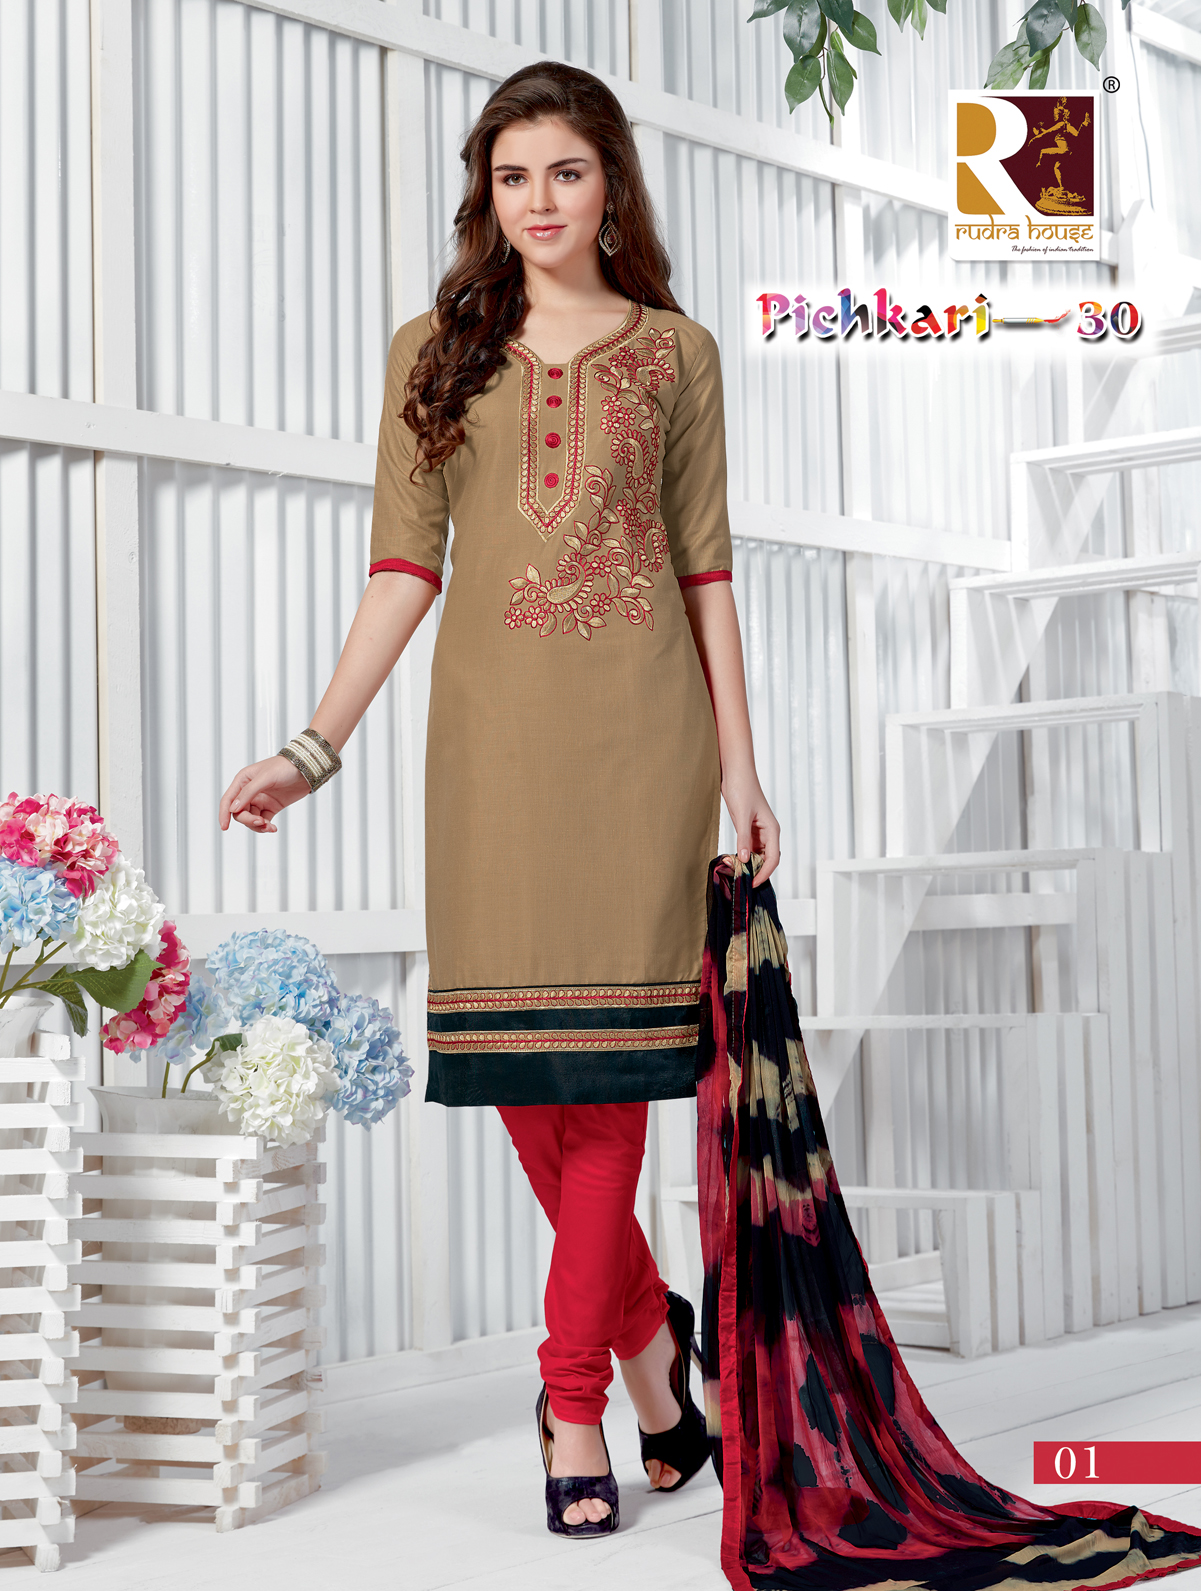 Pichkari 30 – Churidar Cotton Embroidery Dress Material